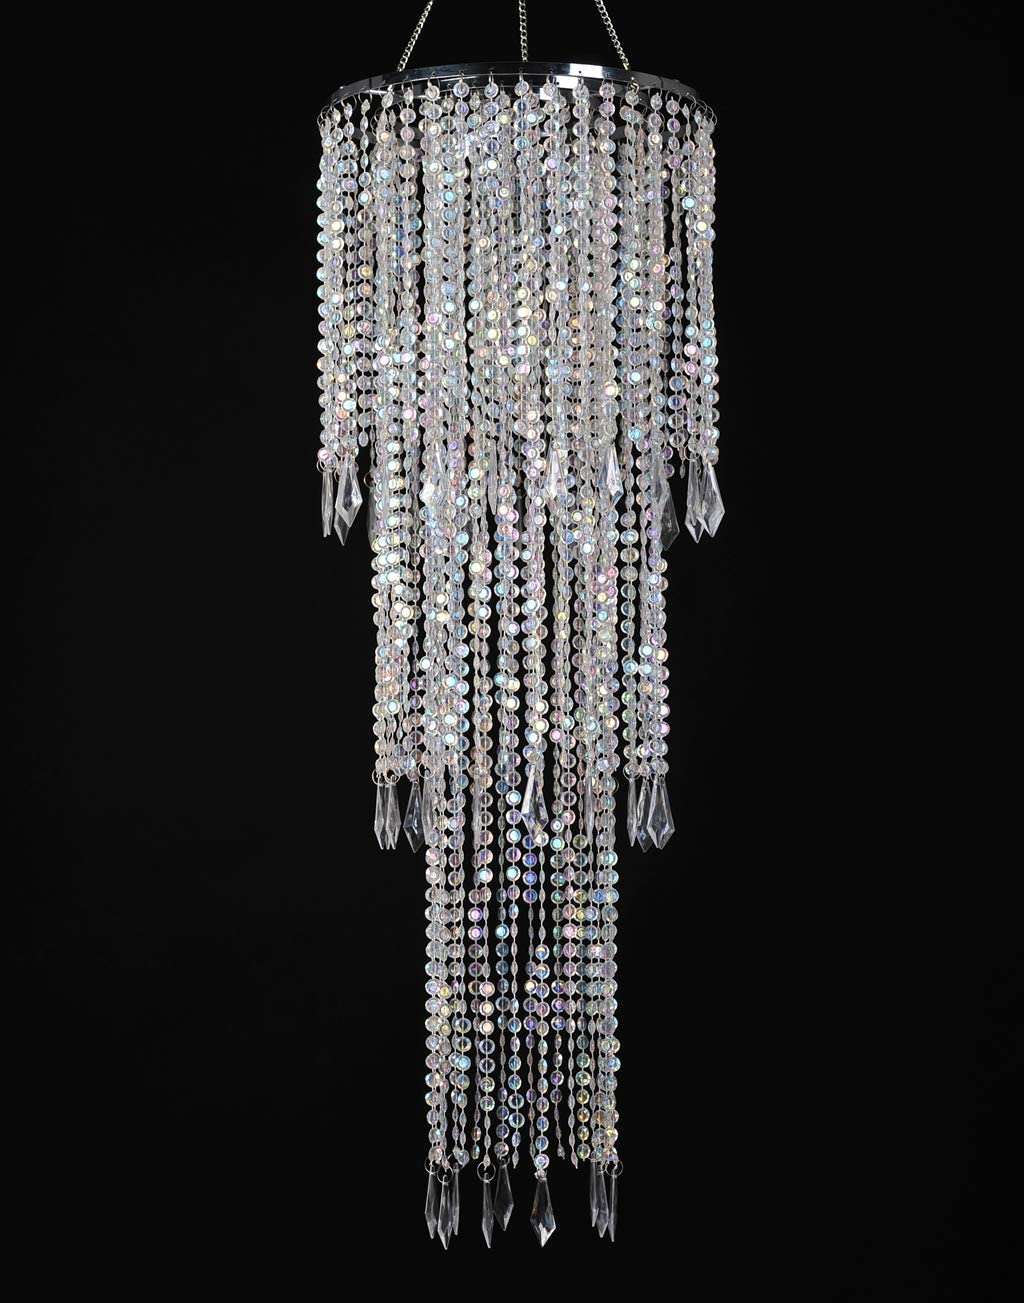 FlavorThings Sparkling Iridescent Acrylic Beaded Hanging Chandelier (W10.25